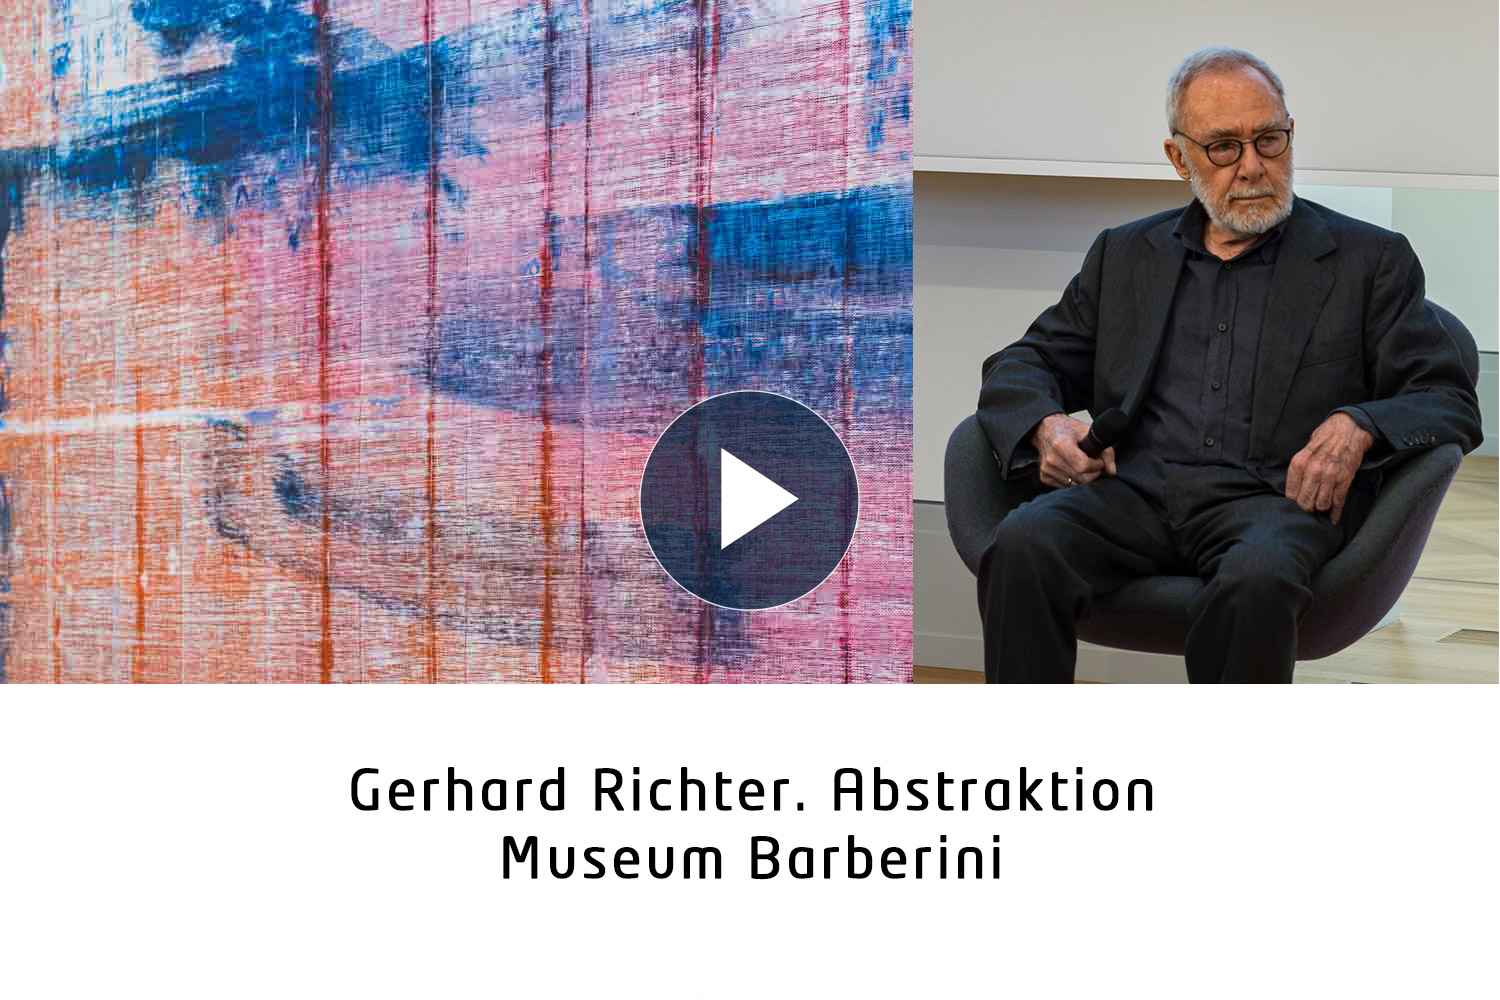 Gerhard Richter, Abstraktion, Museum Barberini